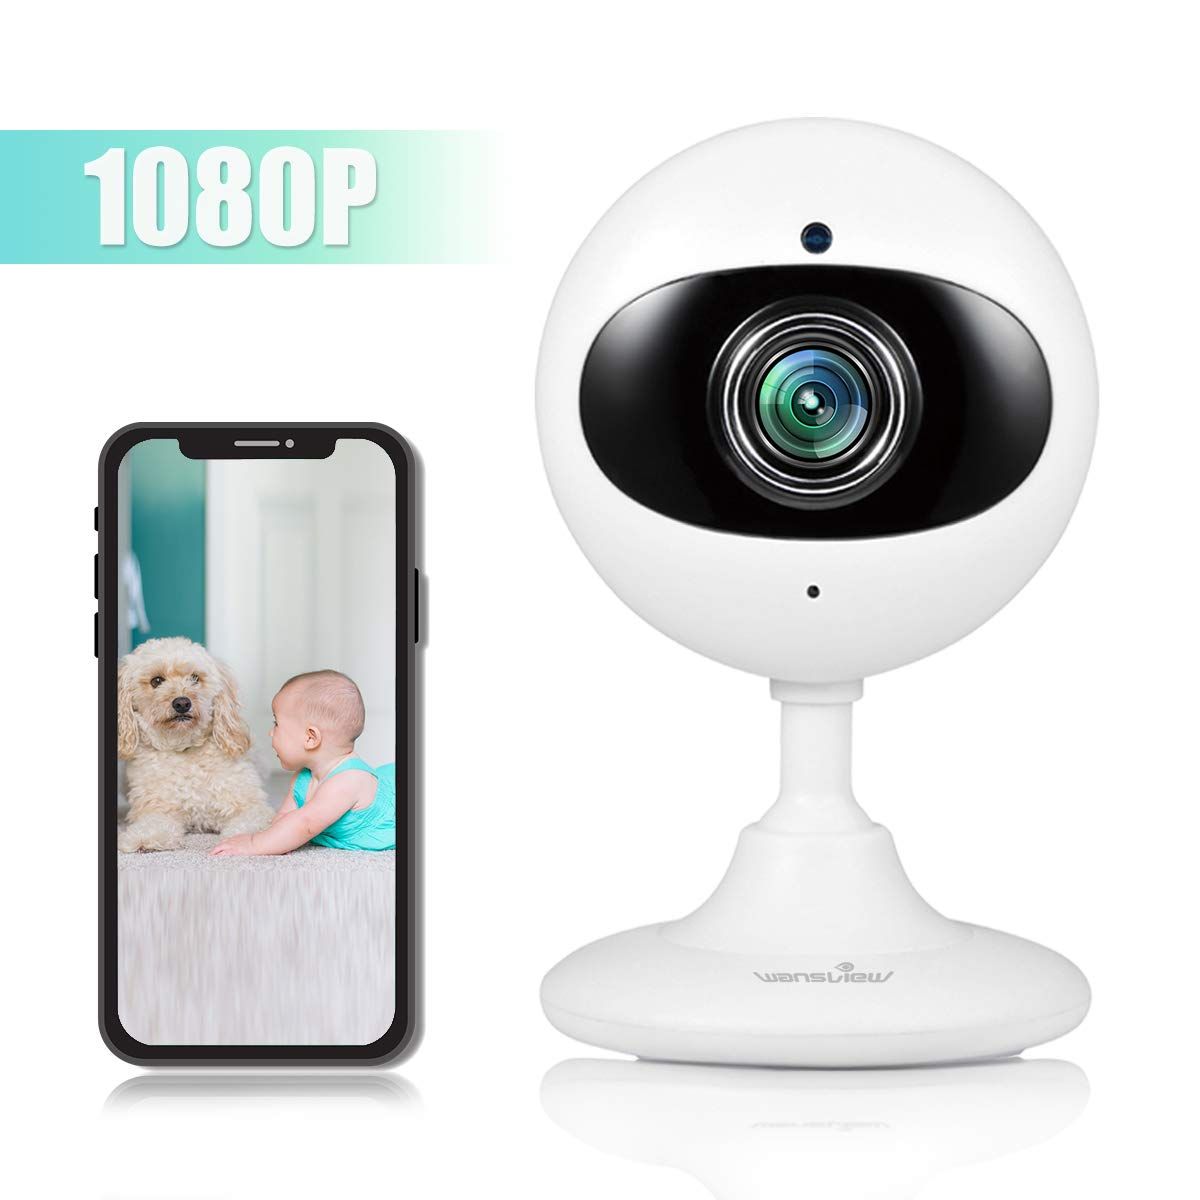 Wansview Wireless Security Camera, 1080P Home WiFi Surveillance Indoor IP Camera for Baby/Elder/Pet/Nanny Monitor with Night Vision and Two-Way Audio-K3 (White) by Wansview